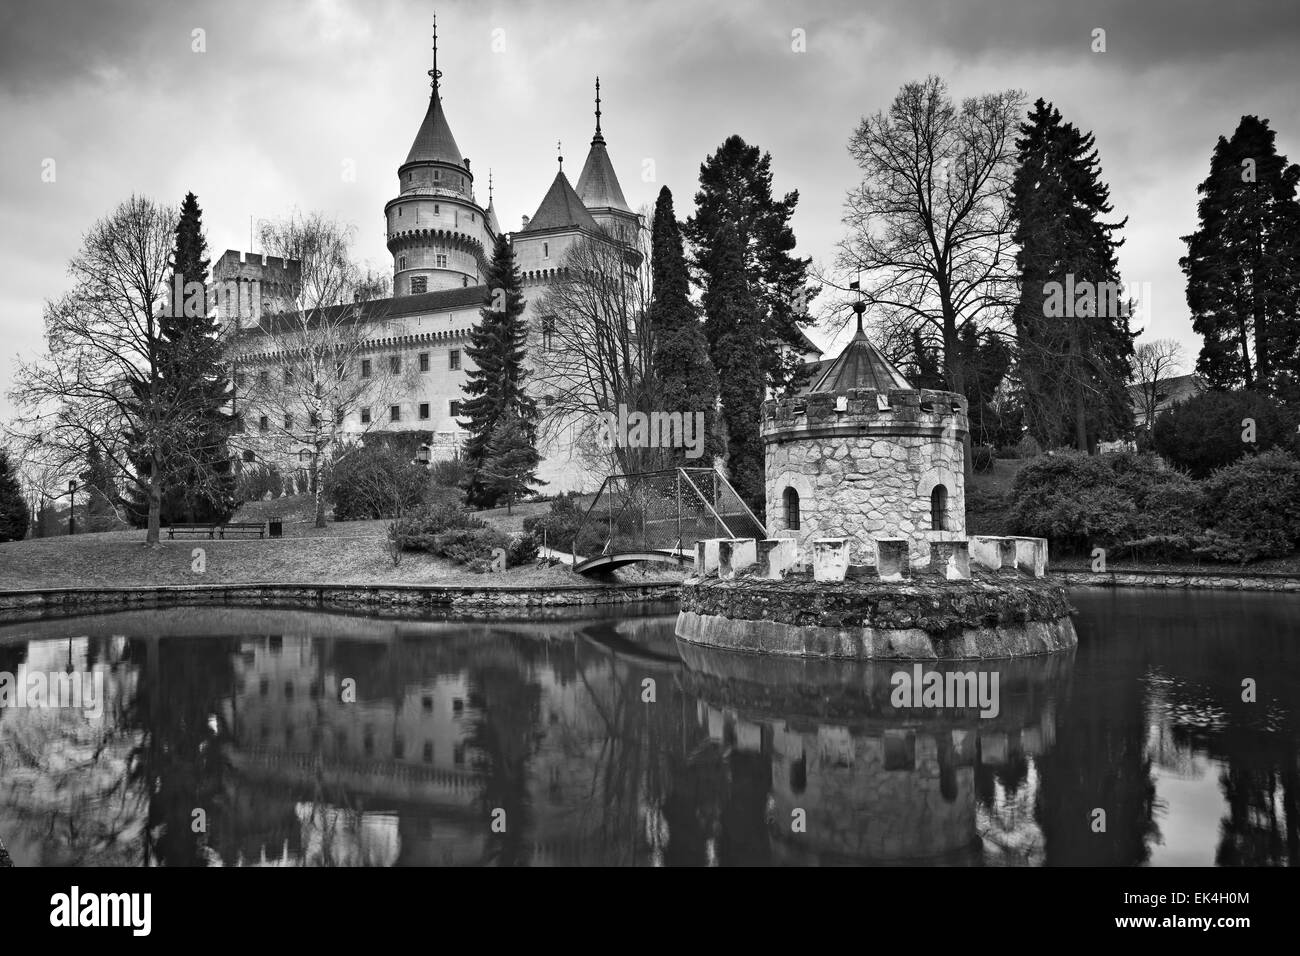 1 / 12  Black and white image of the Bojnice Castle, located in the heart of Slovakia, Europe. - Stock Image